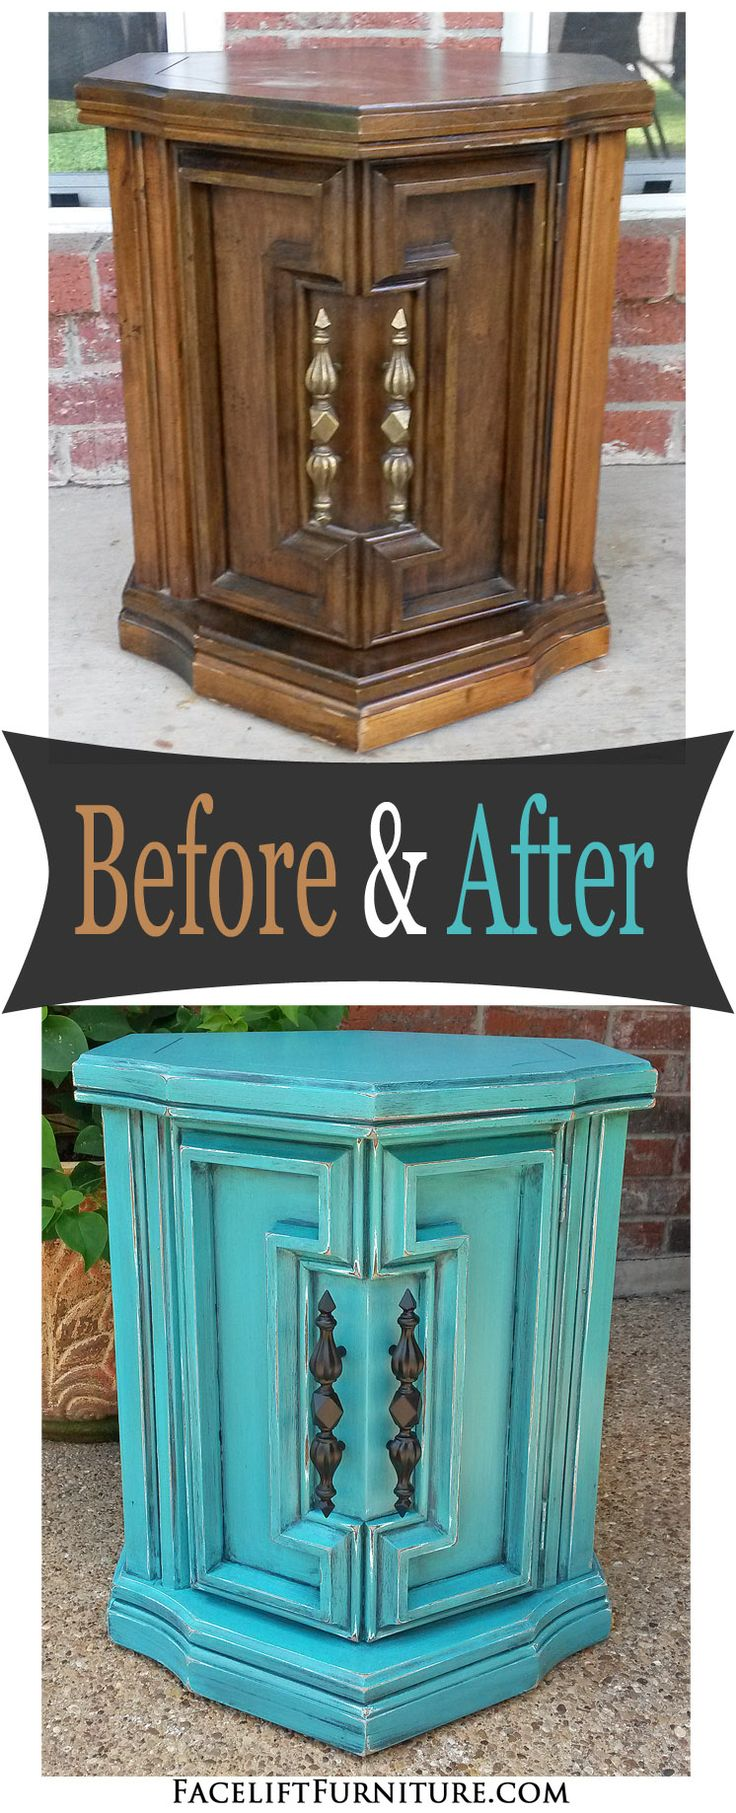 Painting furniture black before and after - Chunky Turquoise Hexagon End Table Before After